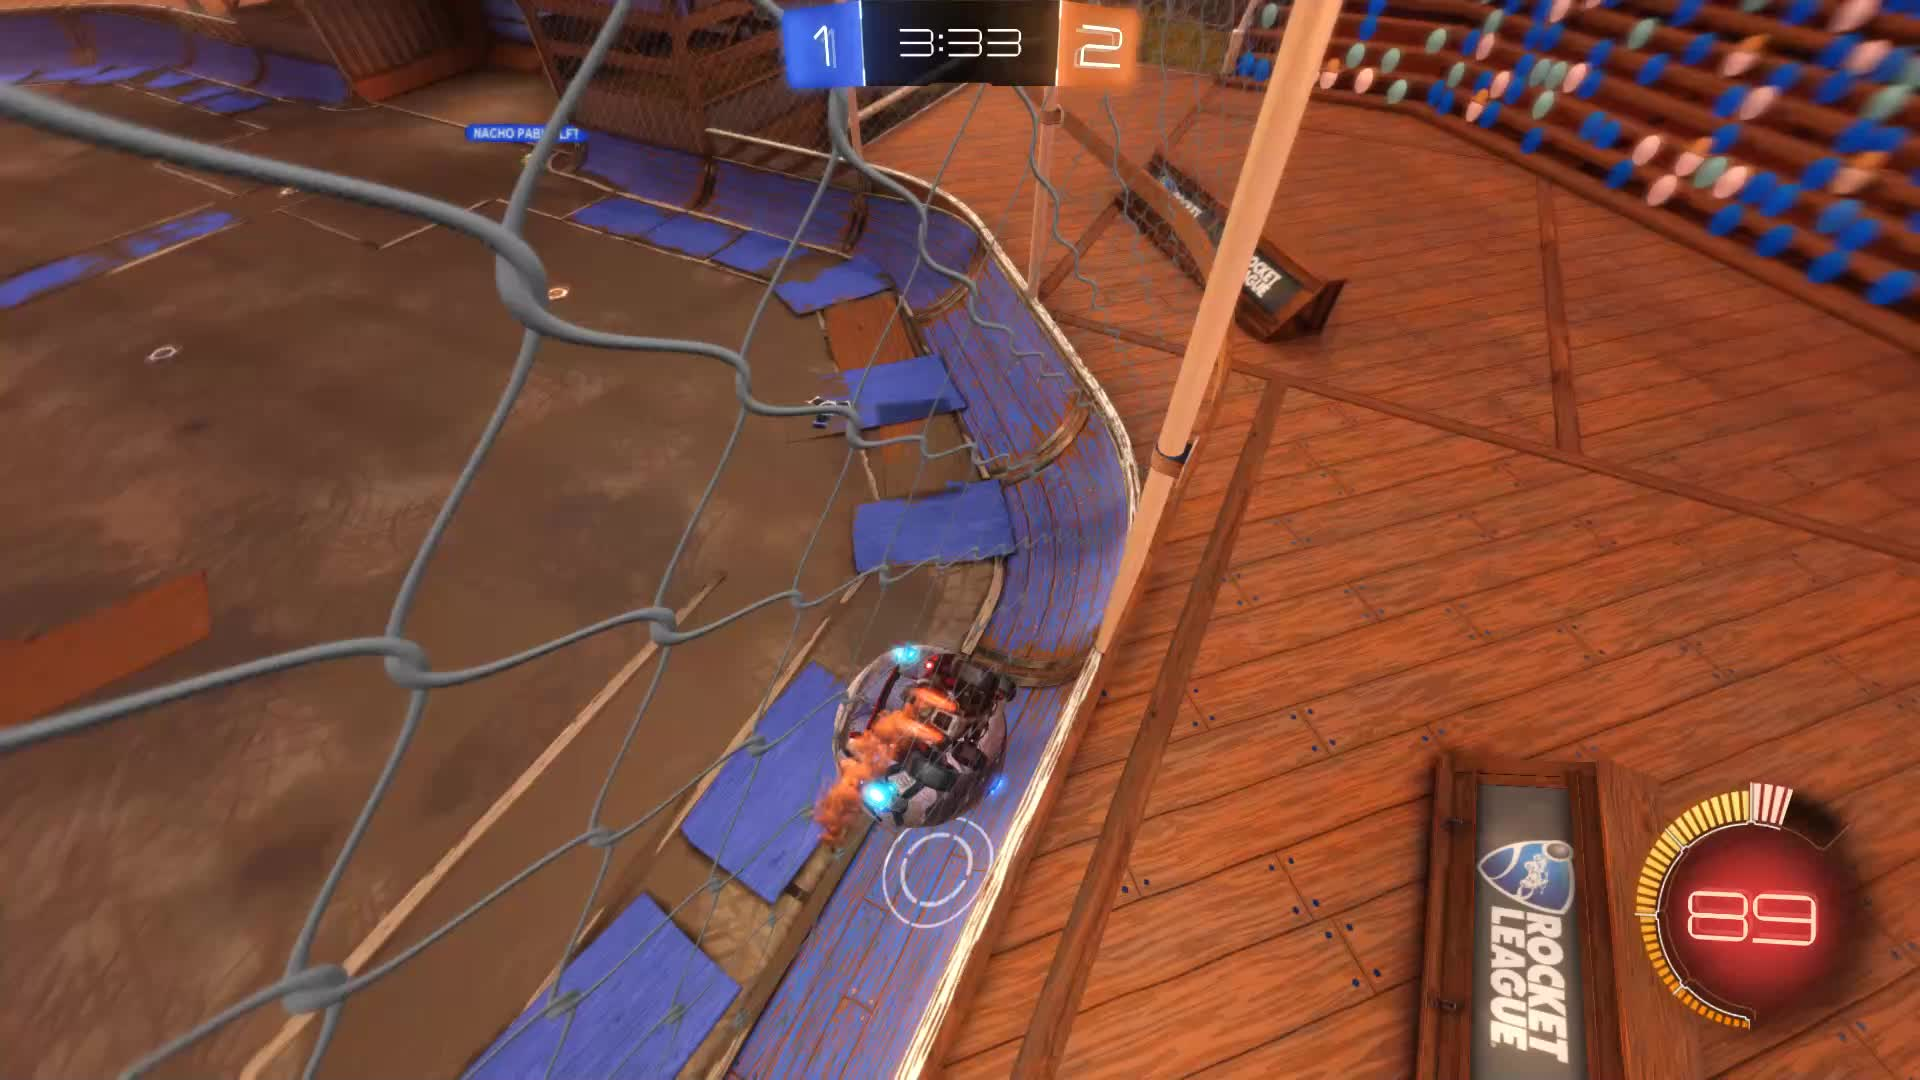 Gif Your Game, GifYourGame, Goal, JAG, Rocket League, RocketLeague, Goal 4: JAG GIFs